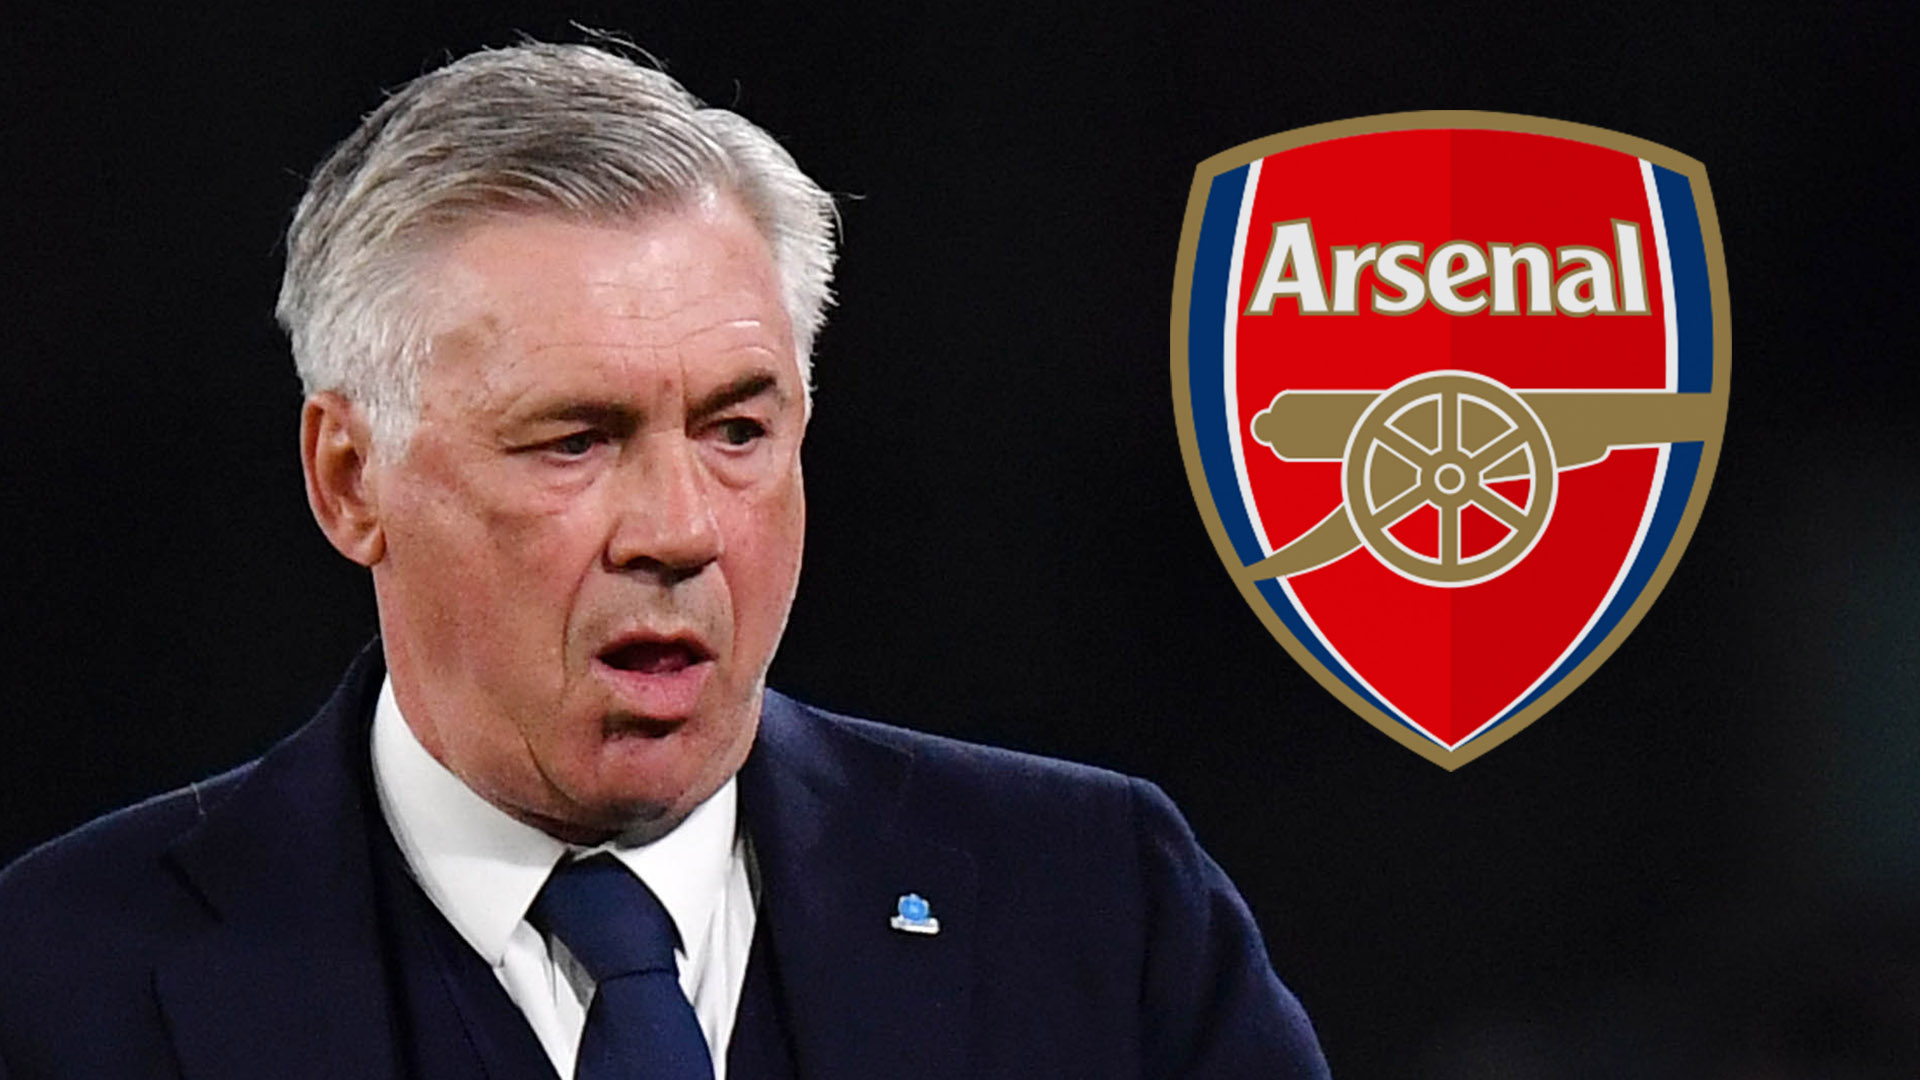 Arsenal Legend Parlour Urges Gunners to Hire Ancelotti As Emery Replacement